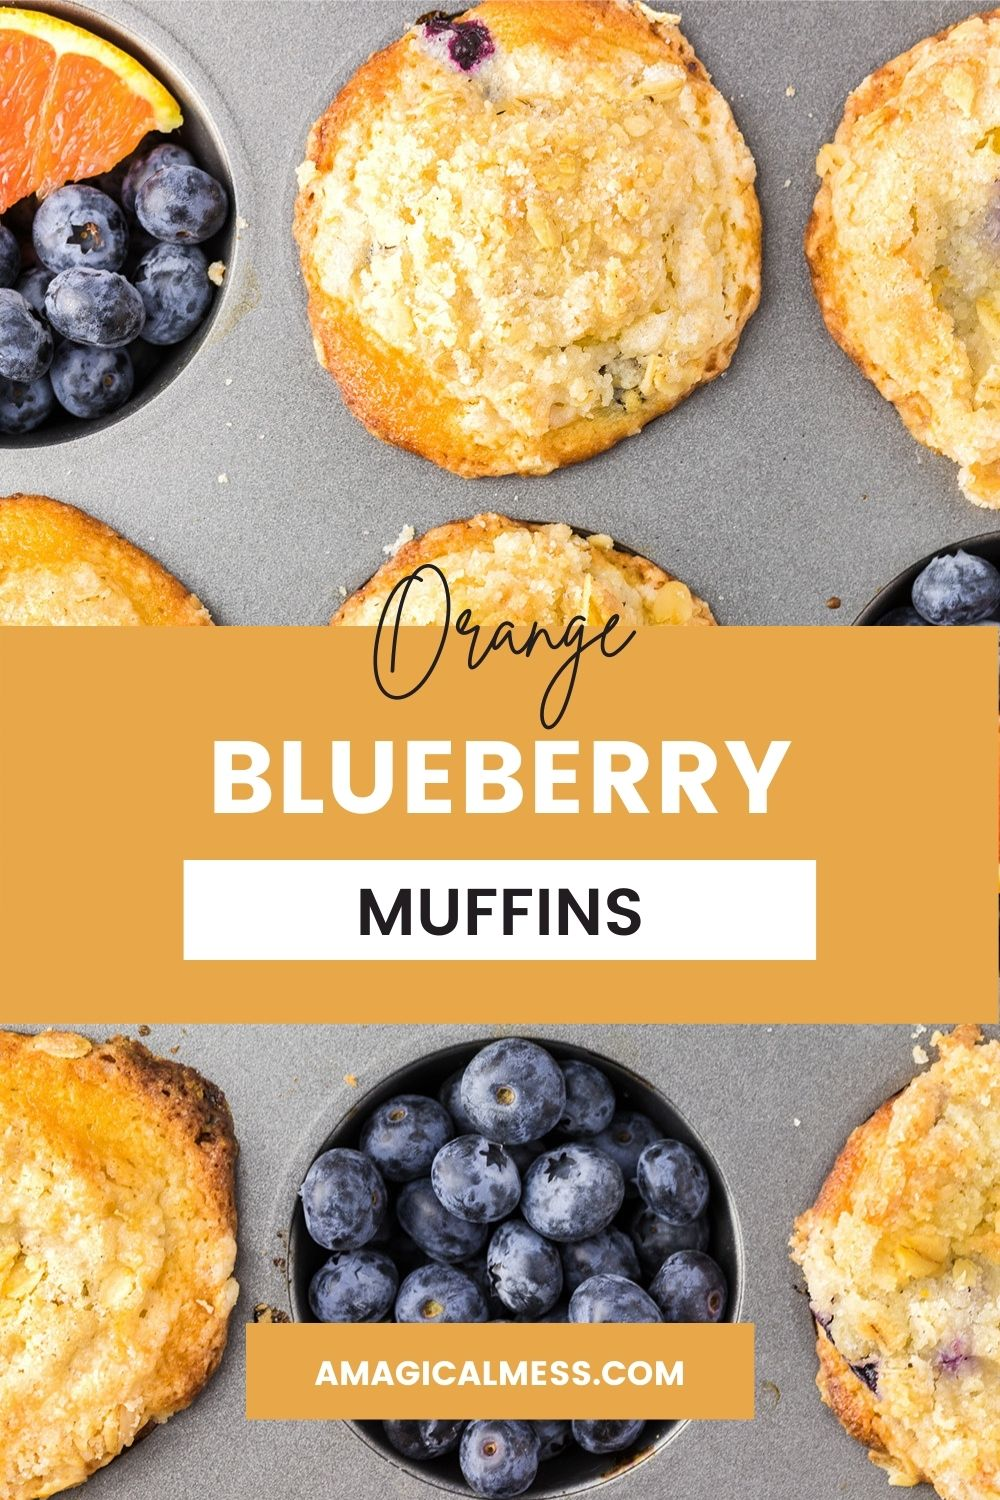 Muffins in a pan.